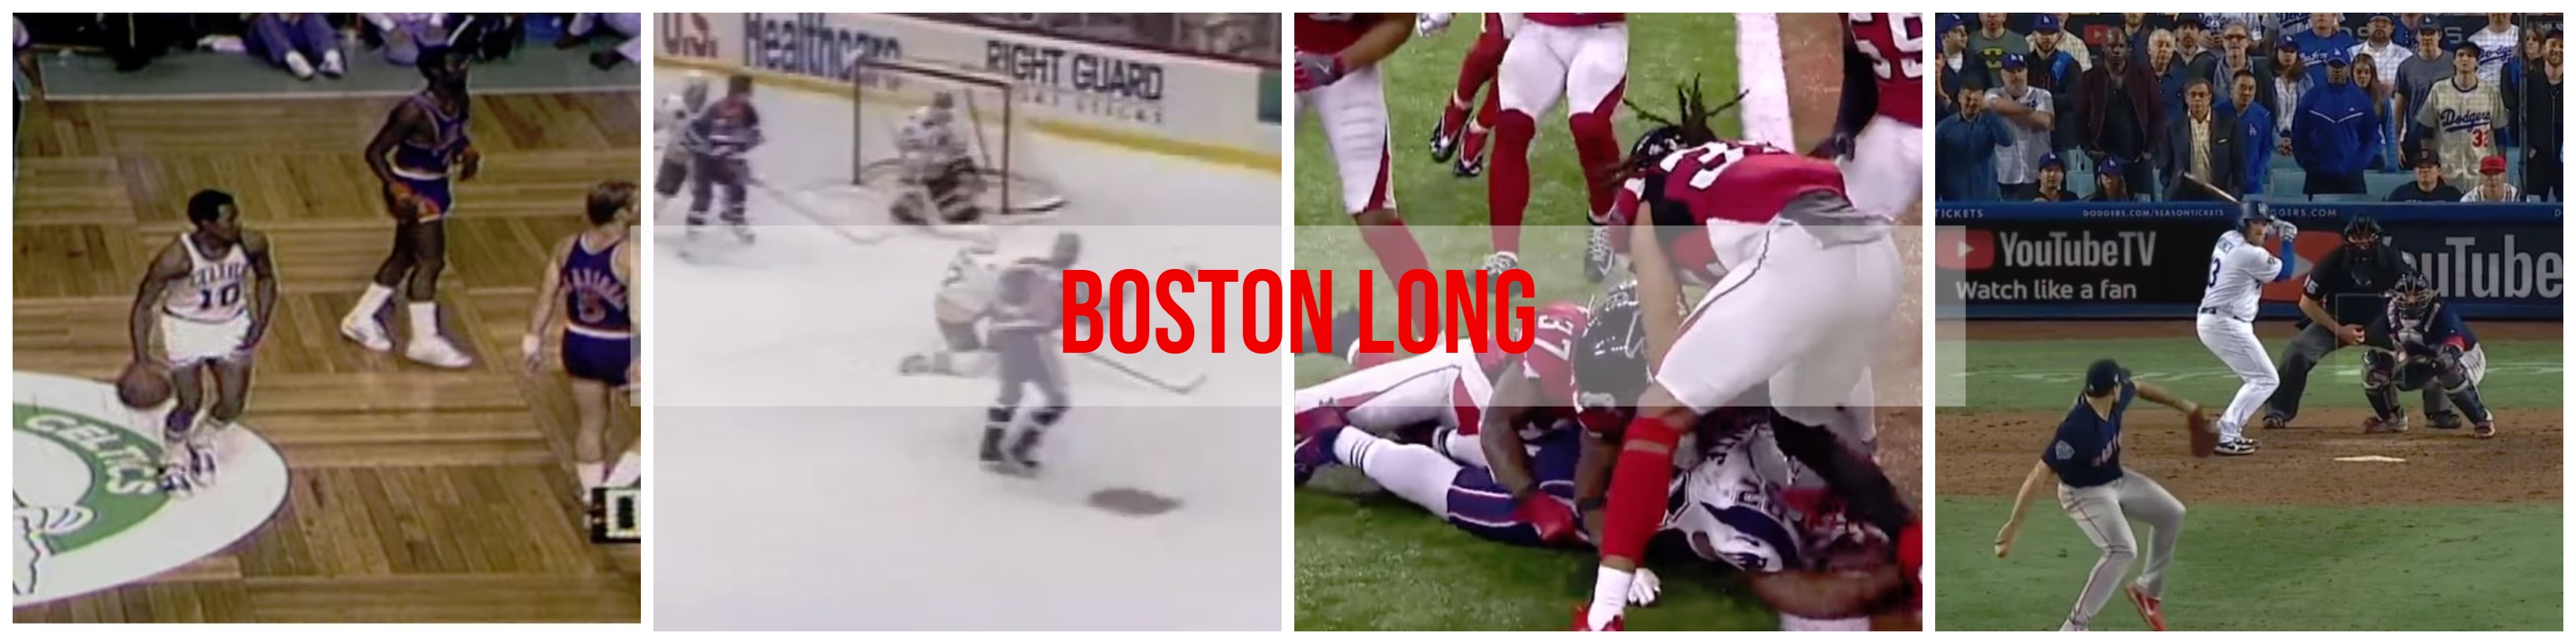 Boston Long: Boston Fans Have Seen the Longest Title Games in All 4 Major Sports